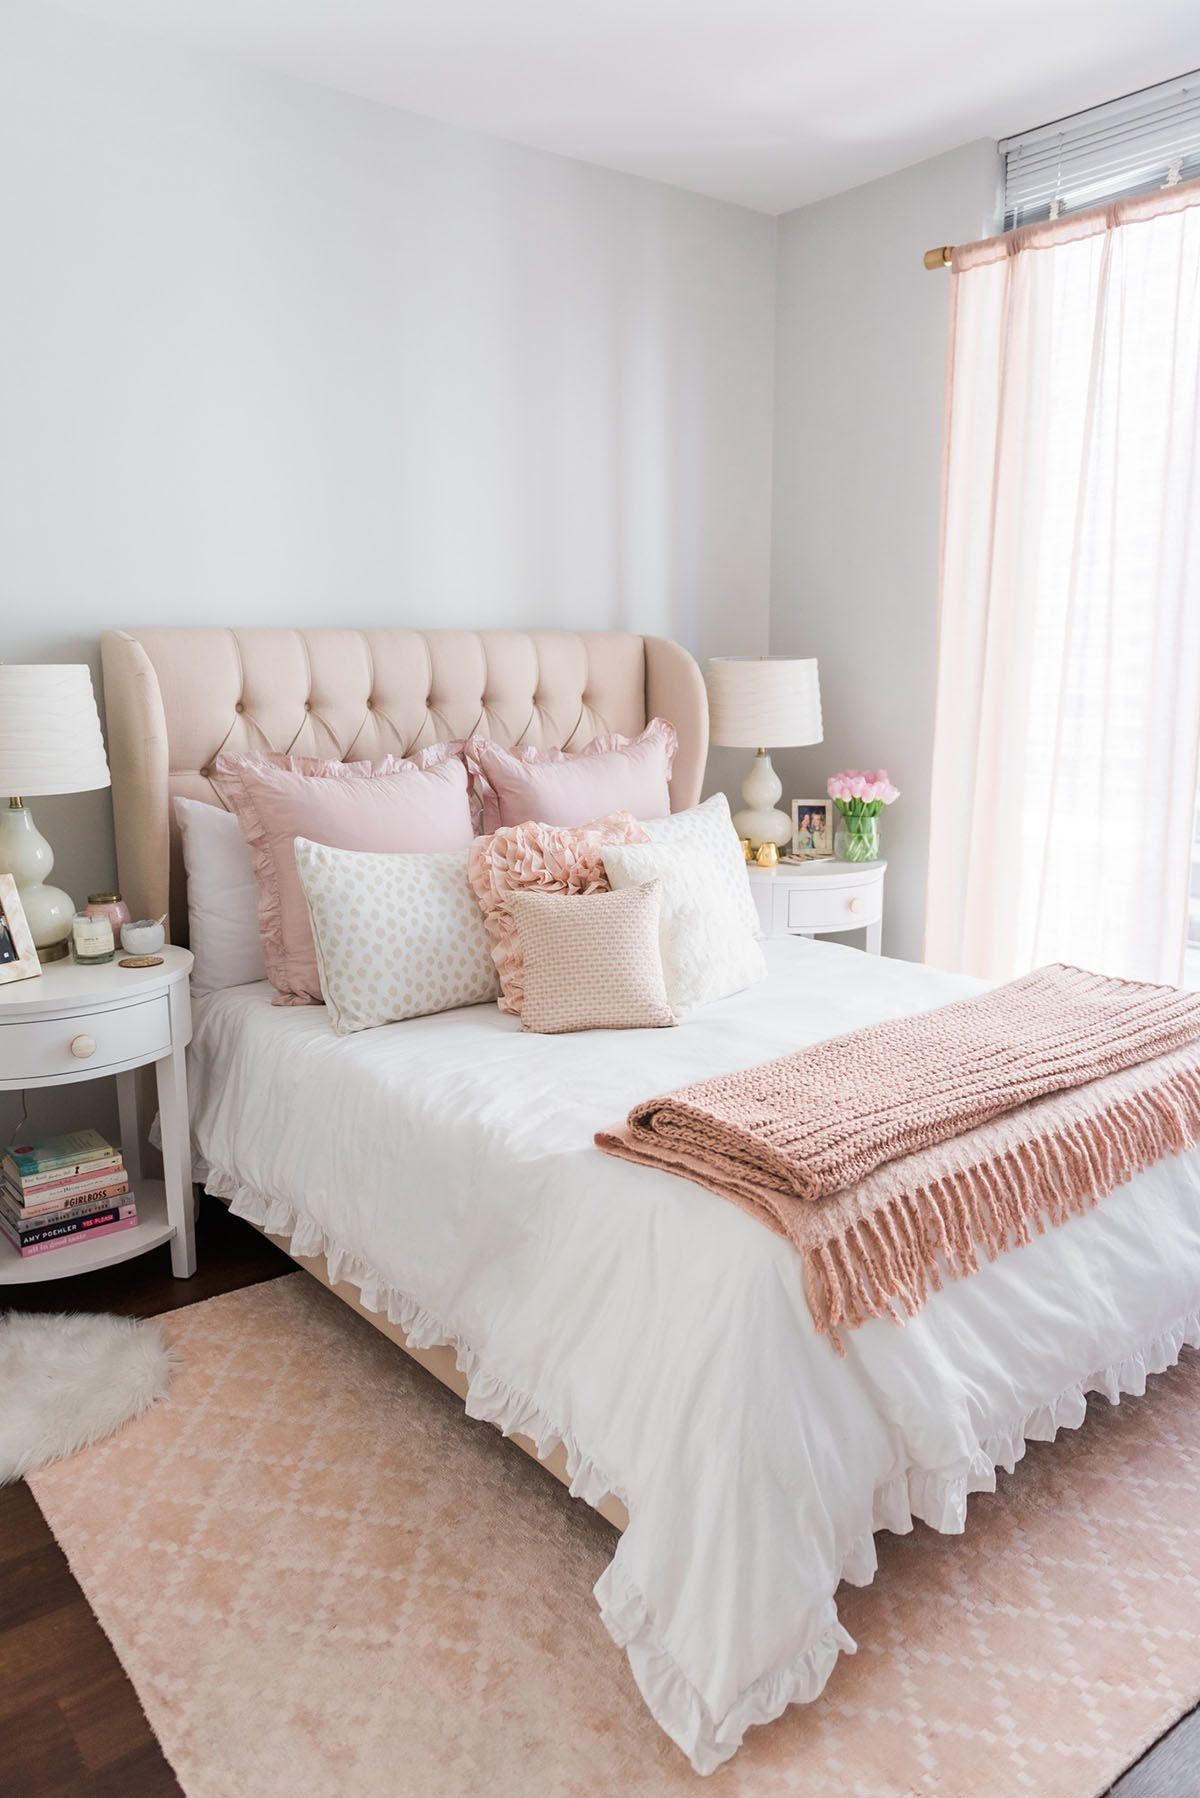 My Chicago Bedroom // Parisian Chic, Blush Pink | Living ...